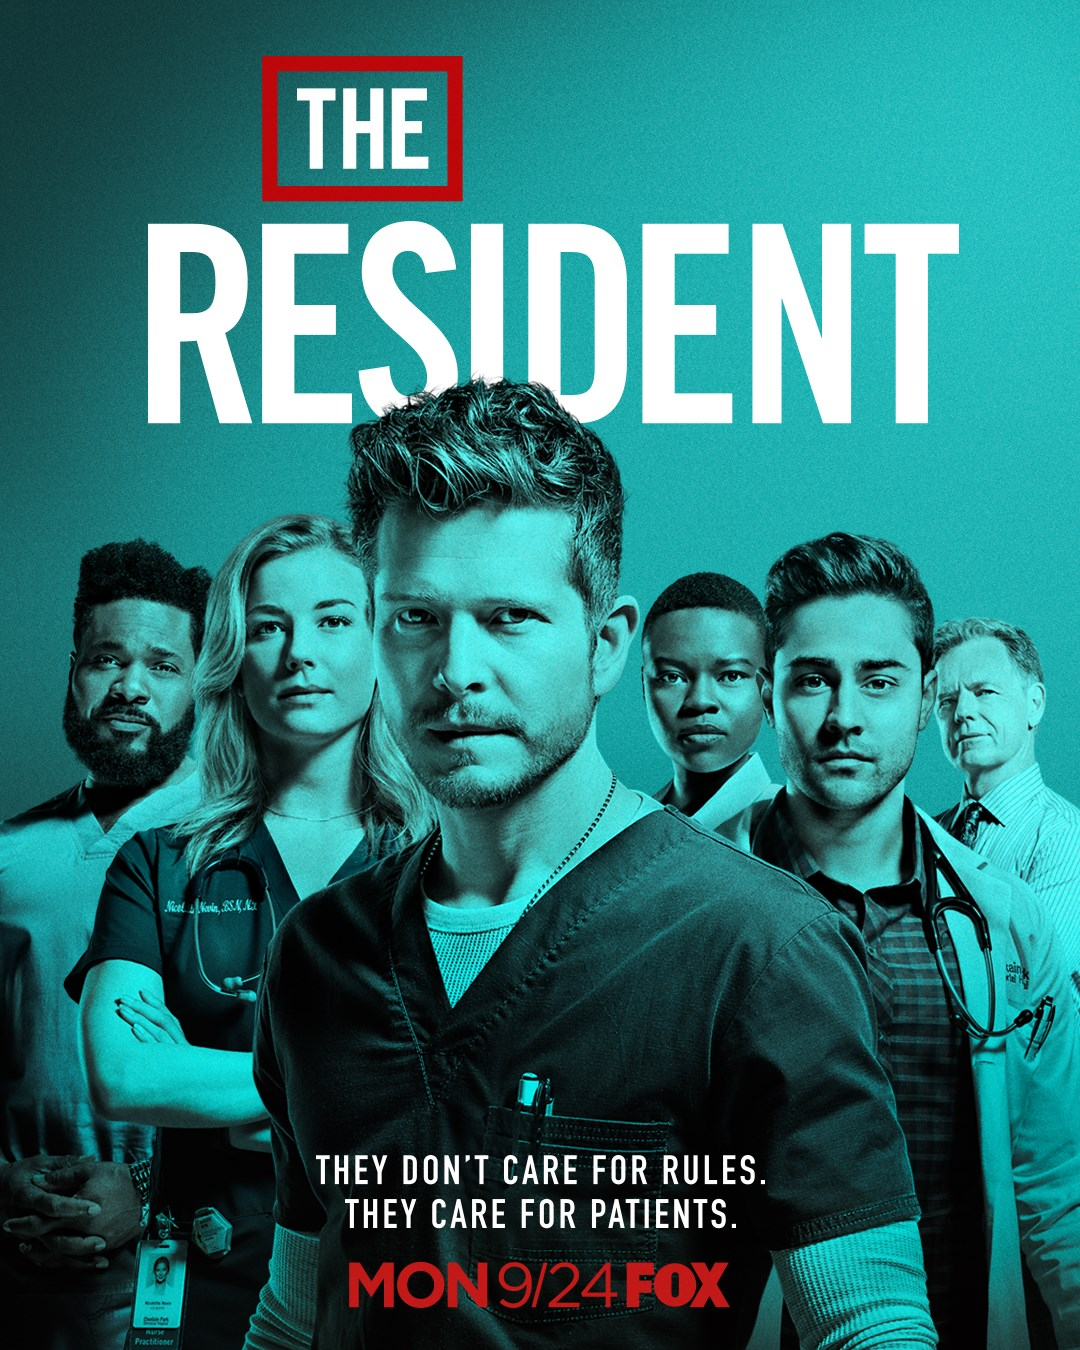 The Resident S01 1080p AMZN WEB-DL DDP5.1 H.264-KiNGS screenshots